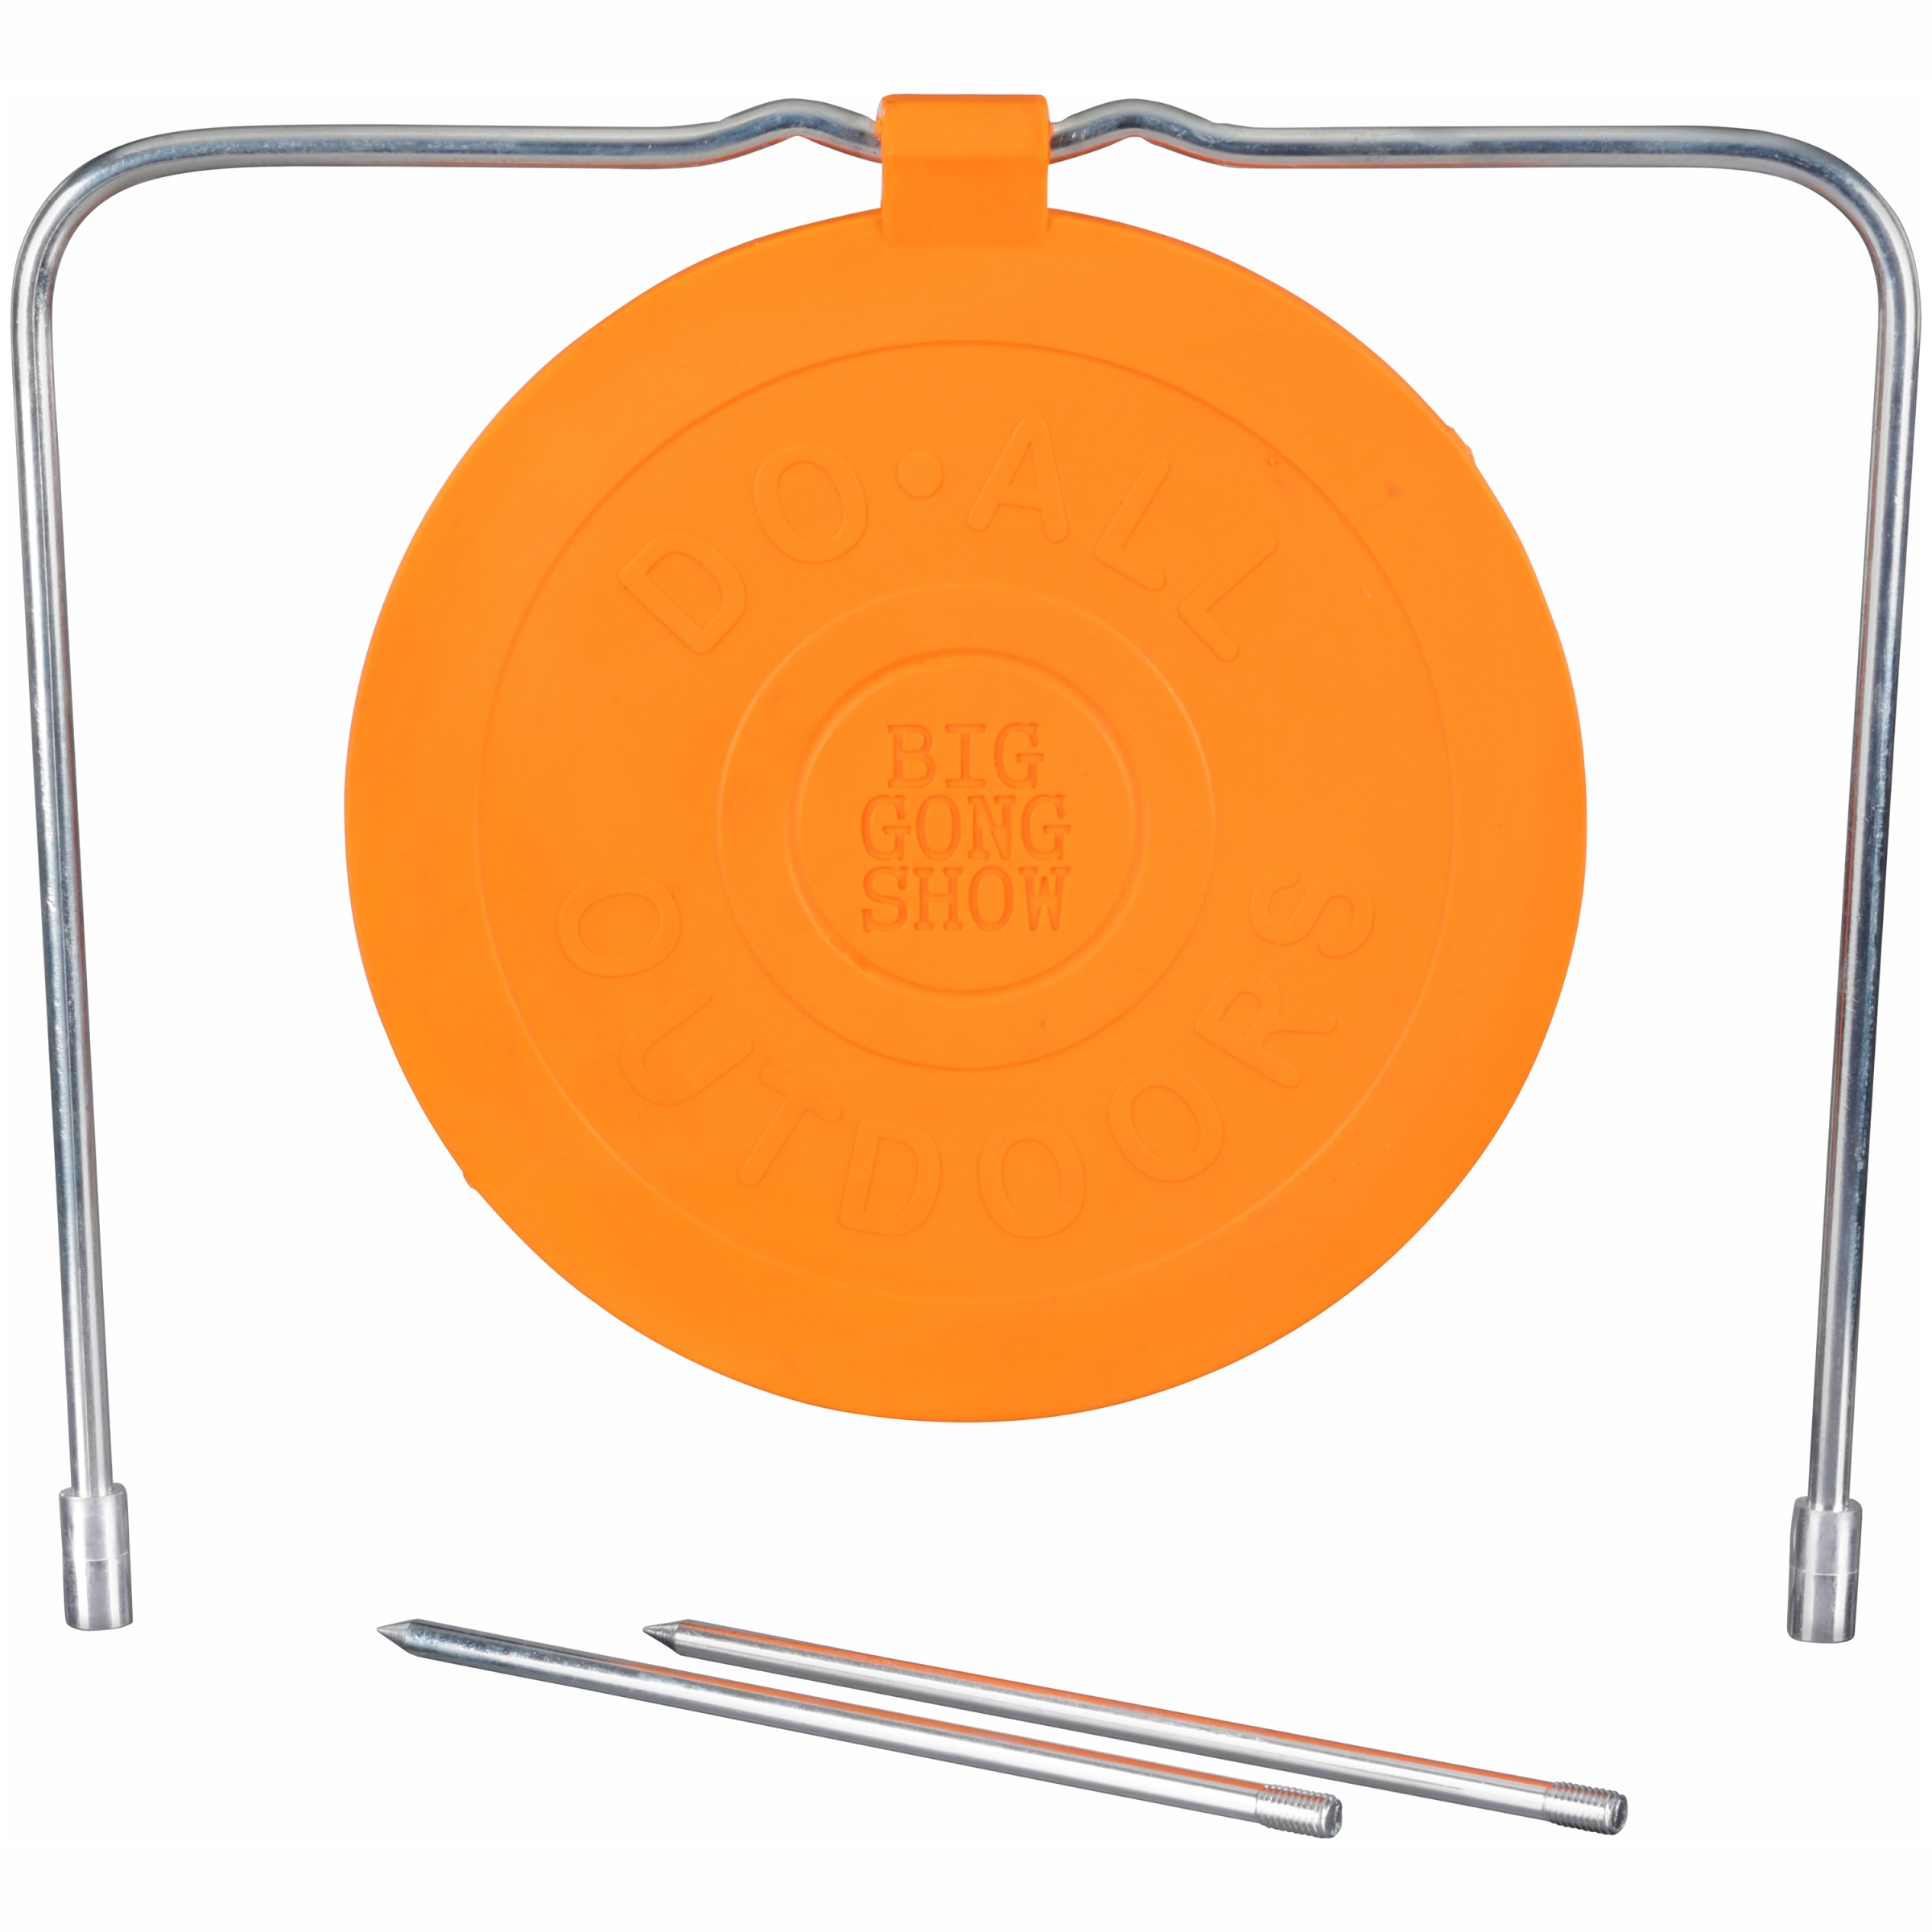 Do-All Outdoors Big Gong Show All Caliber Self Healing Target